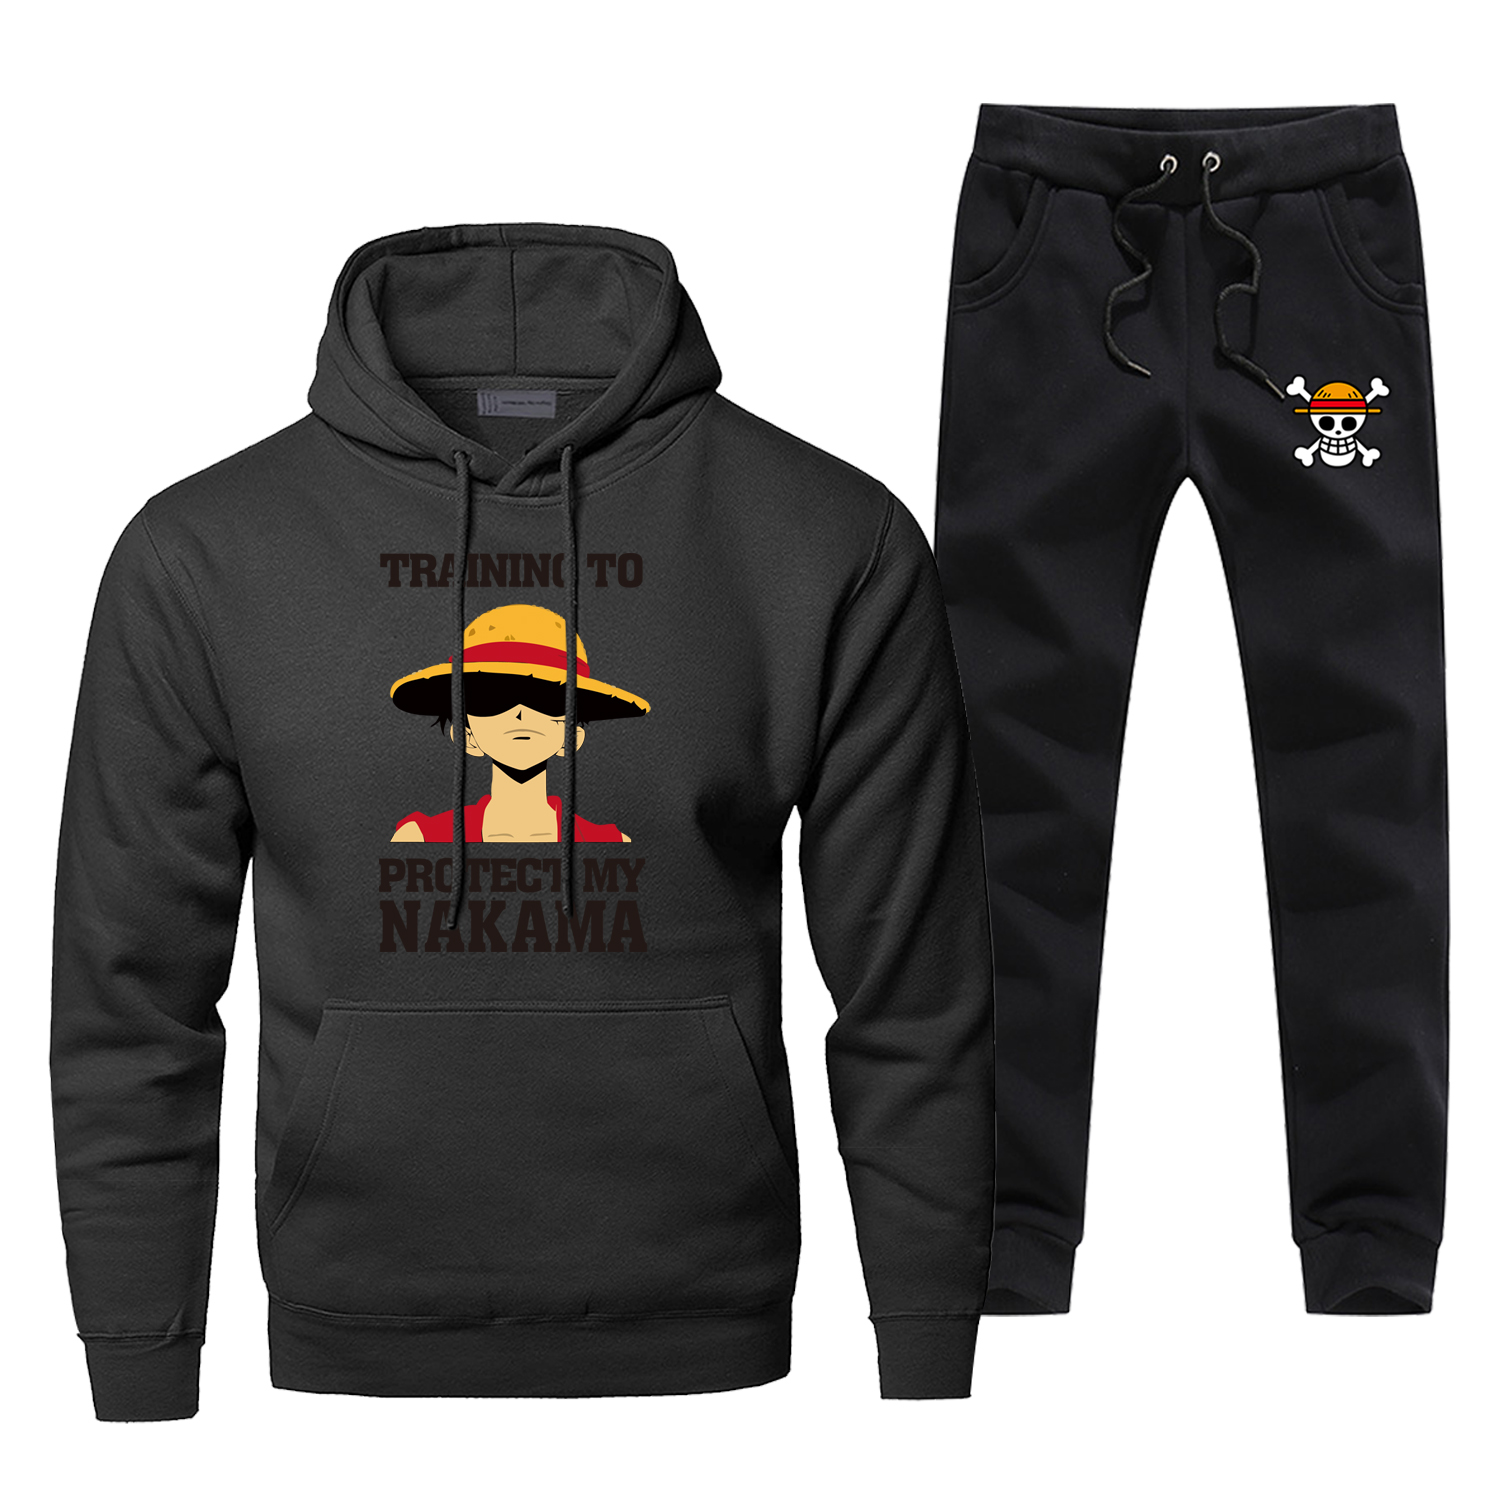 One Piece Hoodie Pants Set Luffy Men Sweatshirt Skull Male Hoodies Sweatshirts Mens Sets 2 Piece Pant Pullover Japan Anime Coat